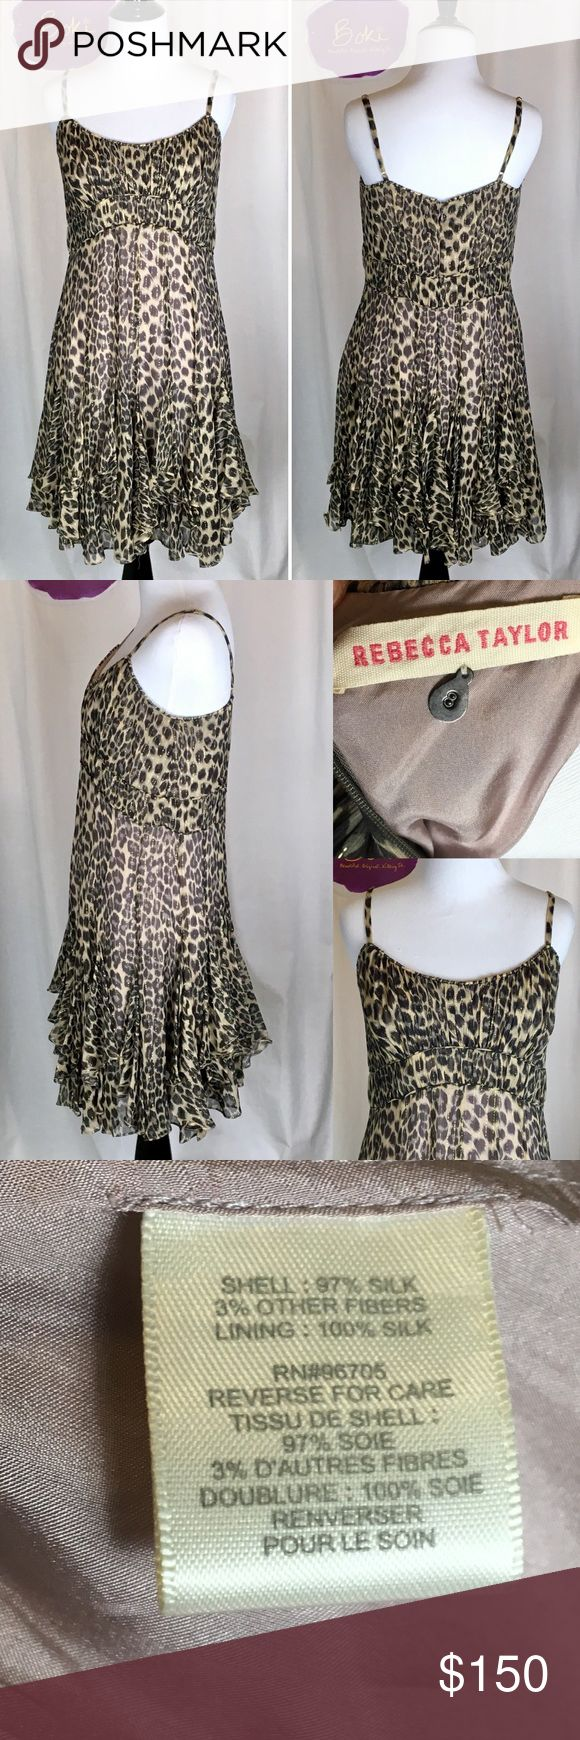 "Rebecca Taylor Metallic Leopard Silk Blend Dress 8 Fun and flirty, this EUC Rebecca Taylor silk blend dress is a must-have! Layered with ruffles falling below the smocked waist, this dress works beautifully alone or over leggings with a cardigan. Lined in mauve. Flat measures: bust 18"", waist 15"" with 31"" length from highest point on top to hem. No stains, rips or pulls. Side zipper. No trades, offers welcome. Rebecca Taylor Dresses"